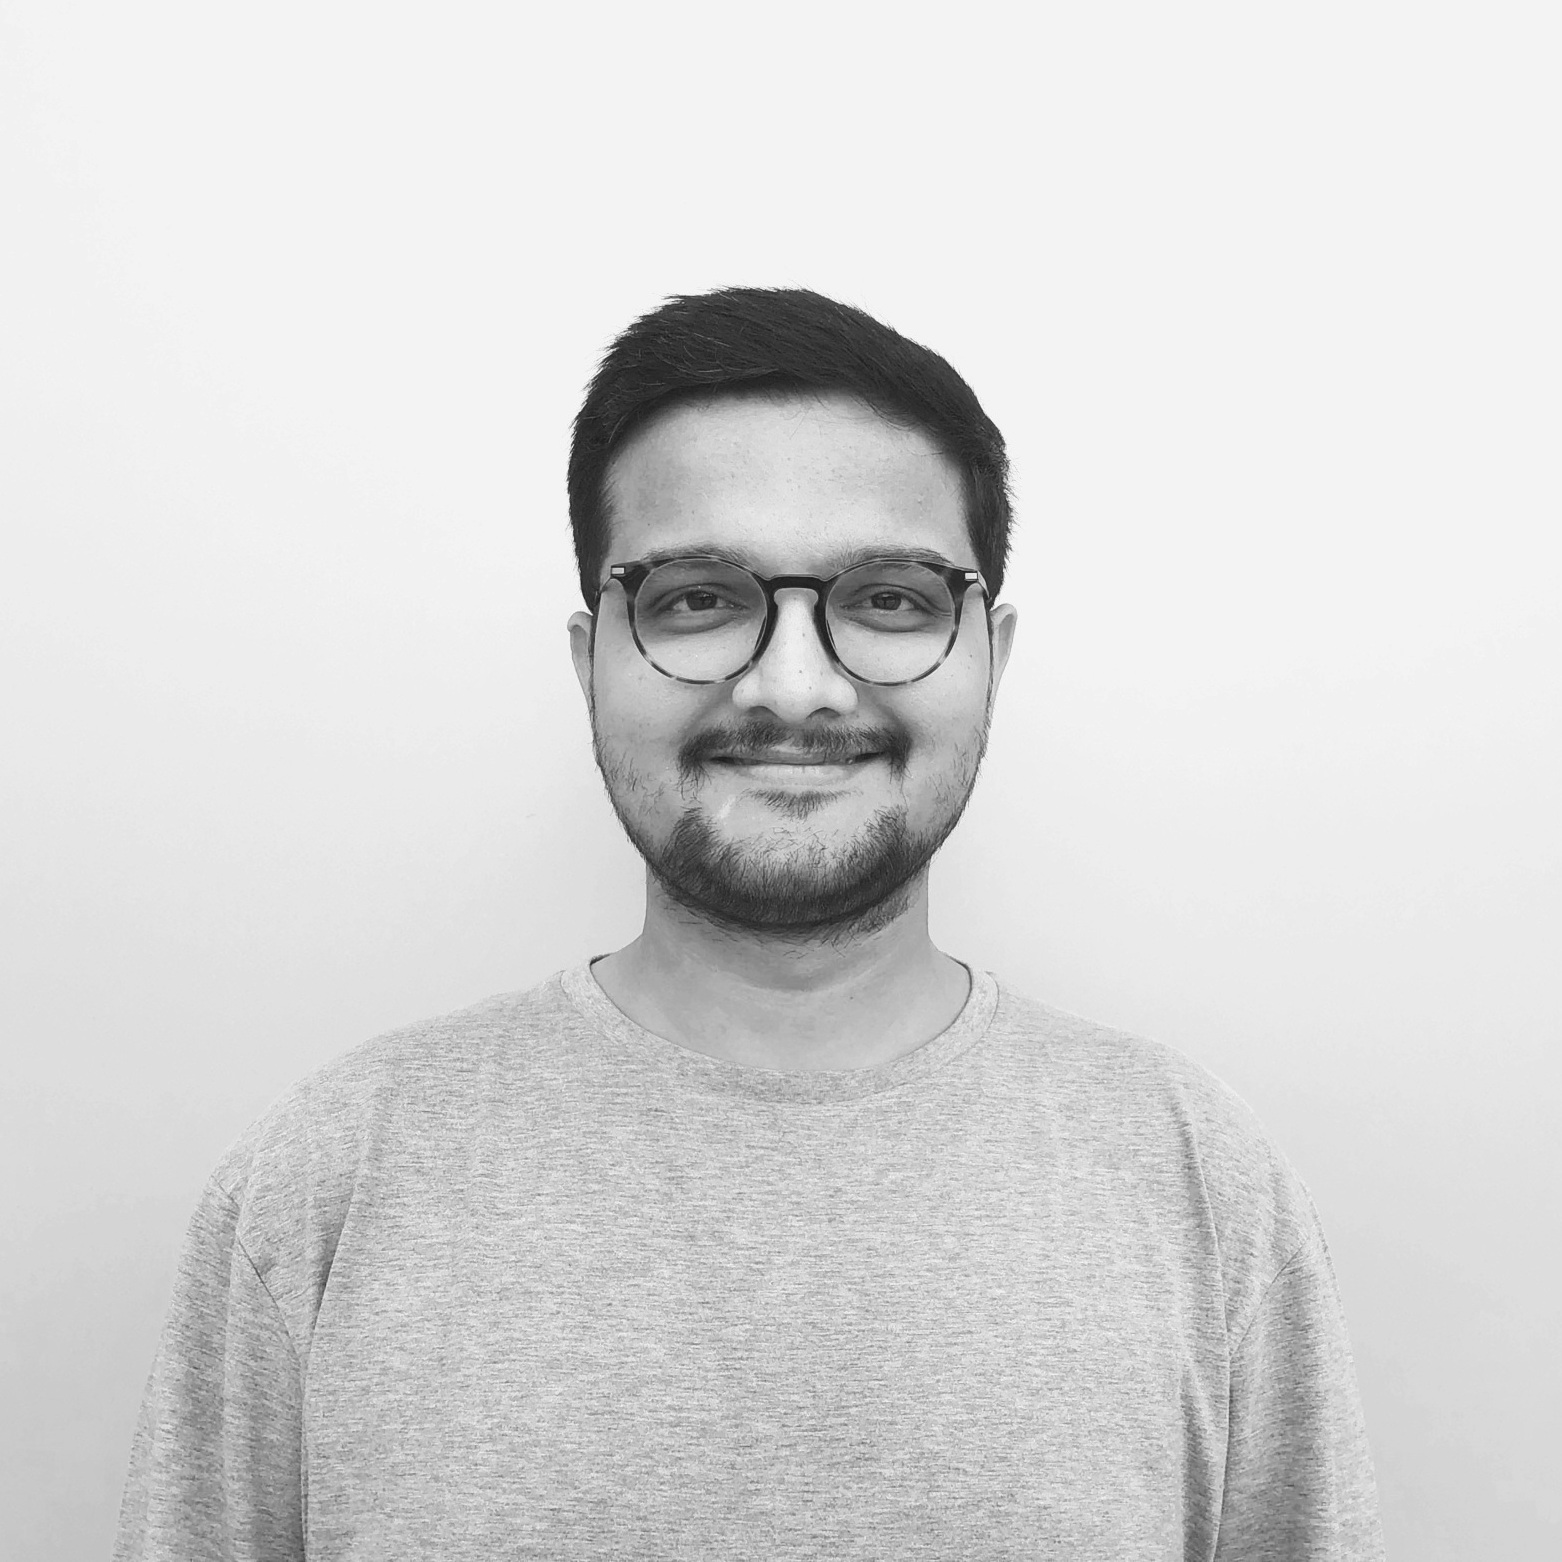 shyamal dave - Curious about systems thinking, digital product design, and building startups. 5+ years of experience in product, business strategy, and startup fund raise. Voracious reader, writer, and backpacking traveler.LinkedInTwitter